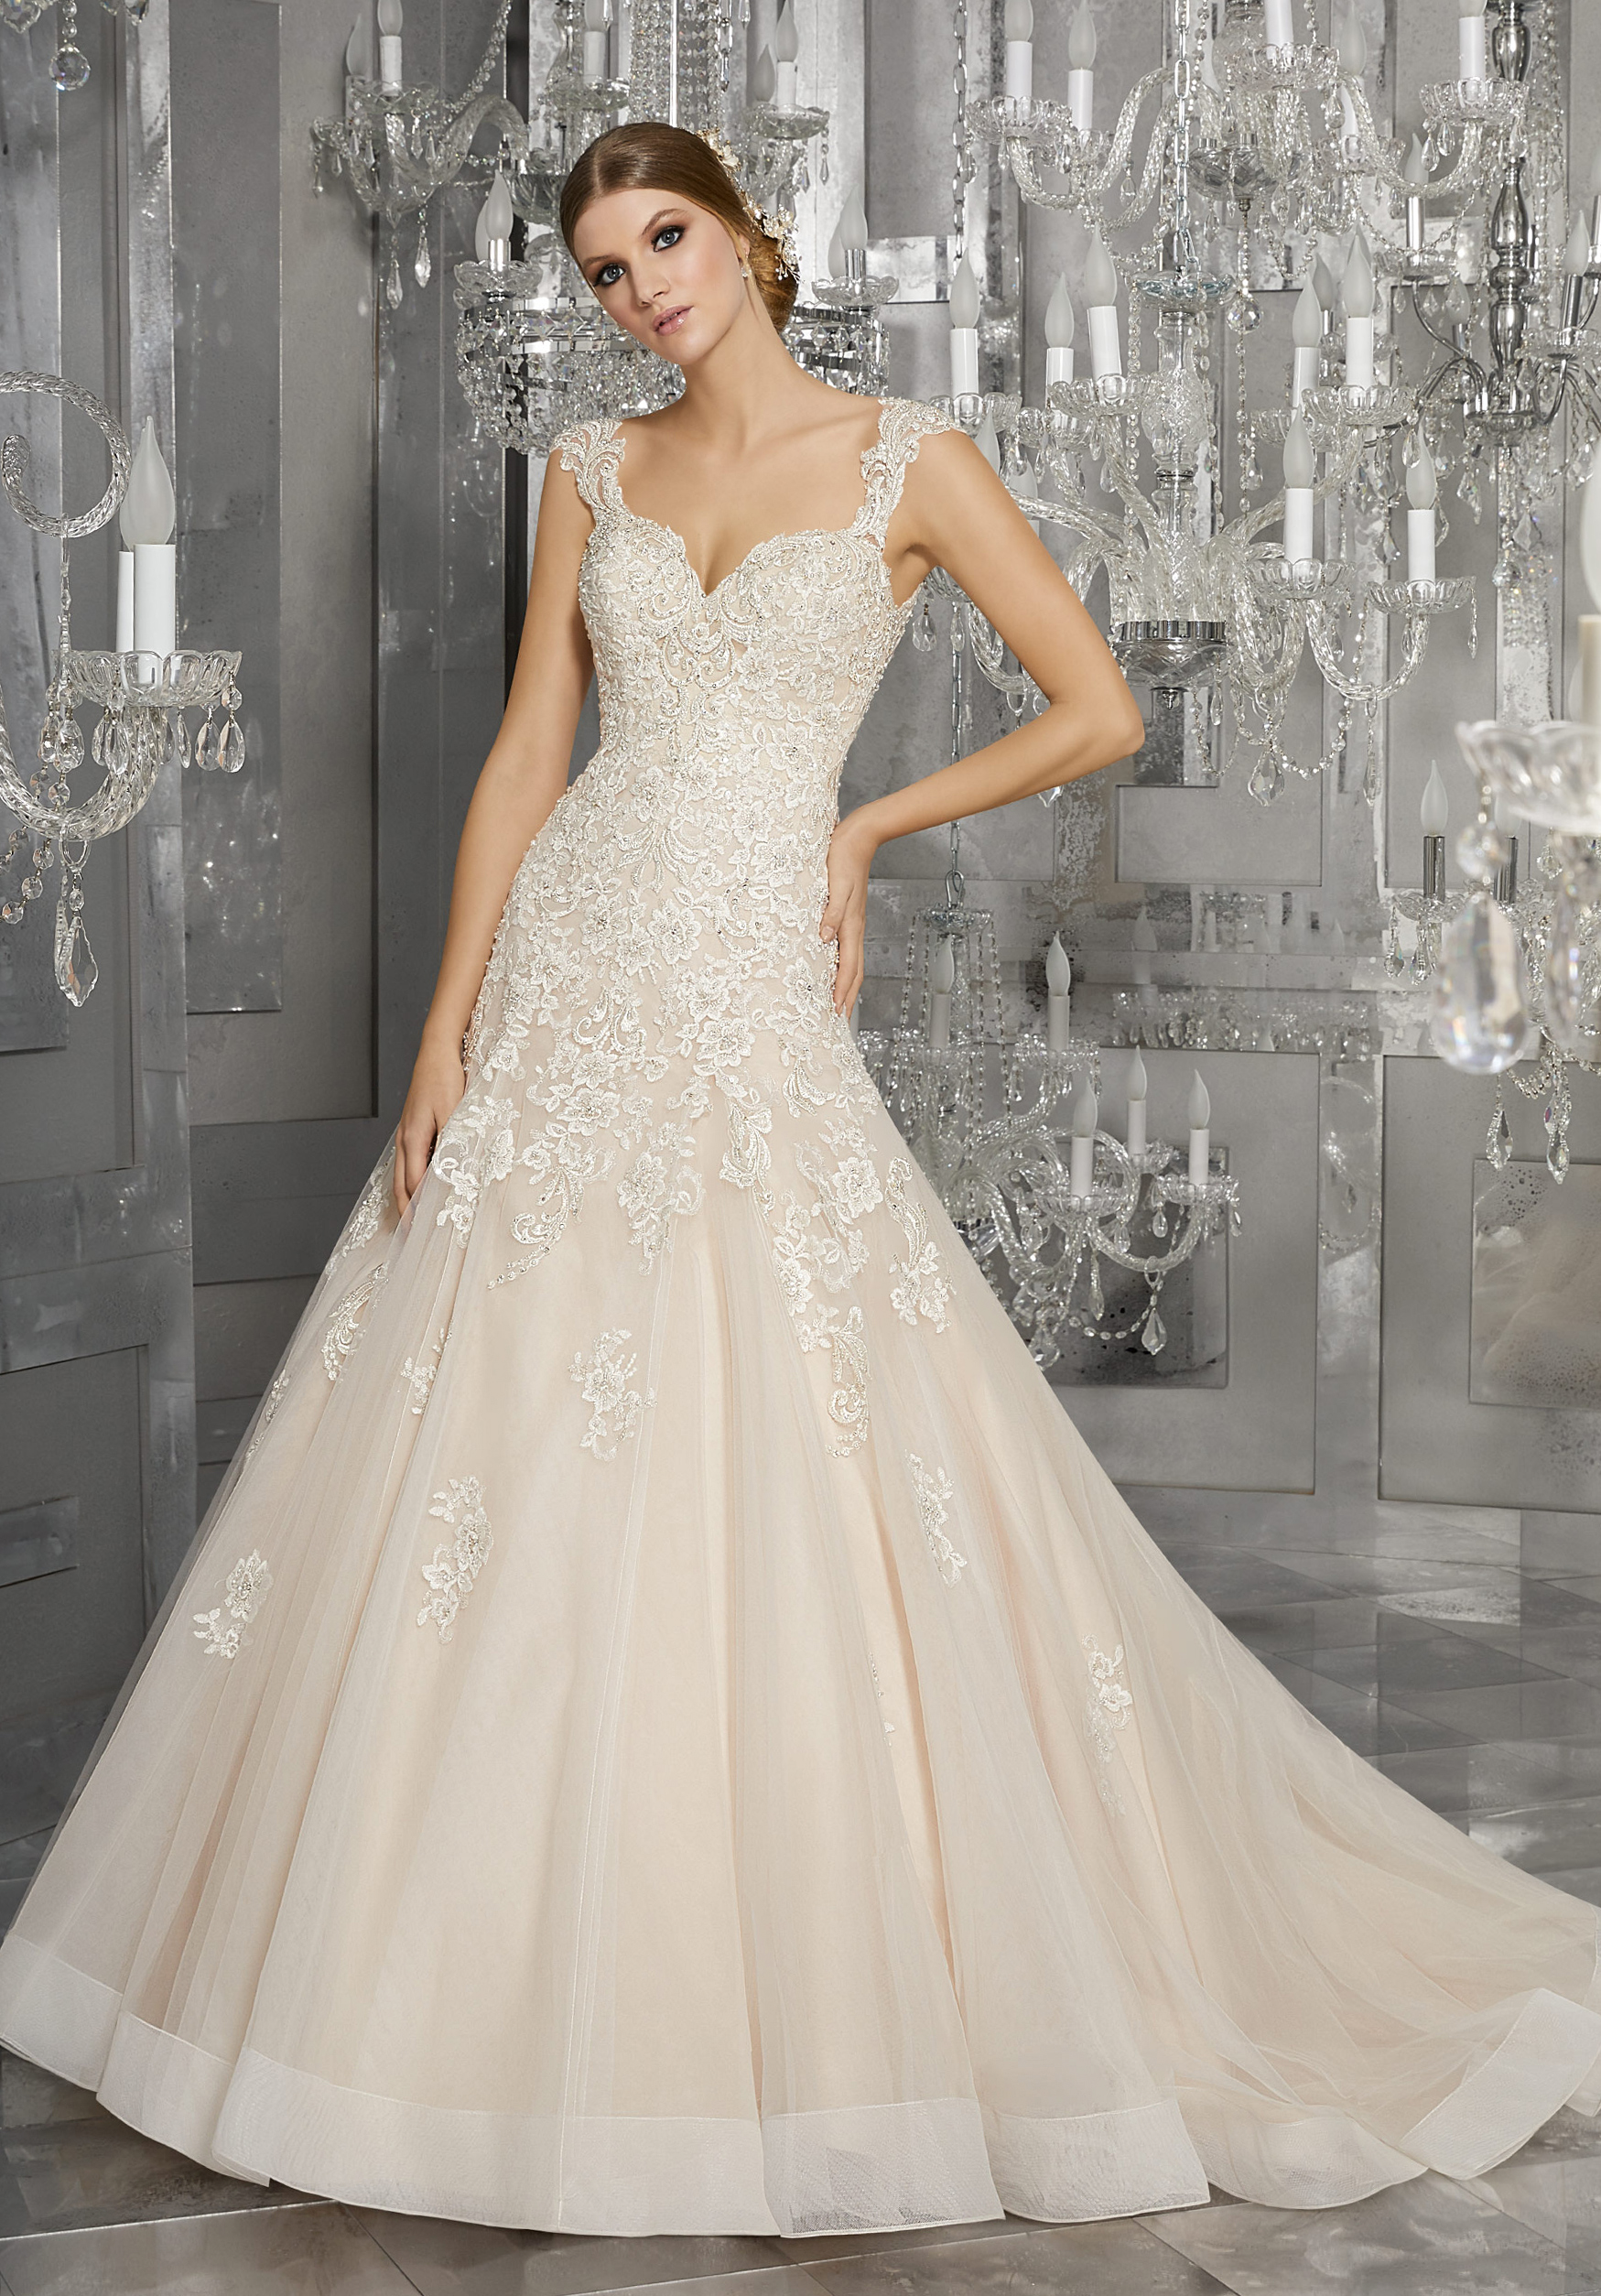 morilee wedding dress spring 2018 v-neck embellished a-line